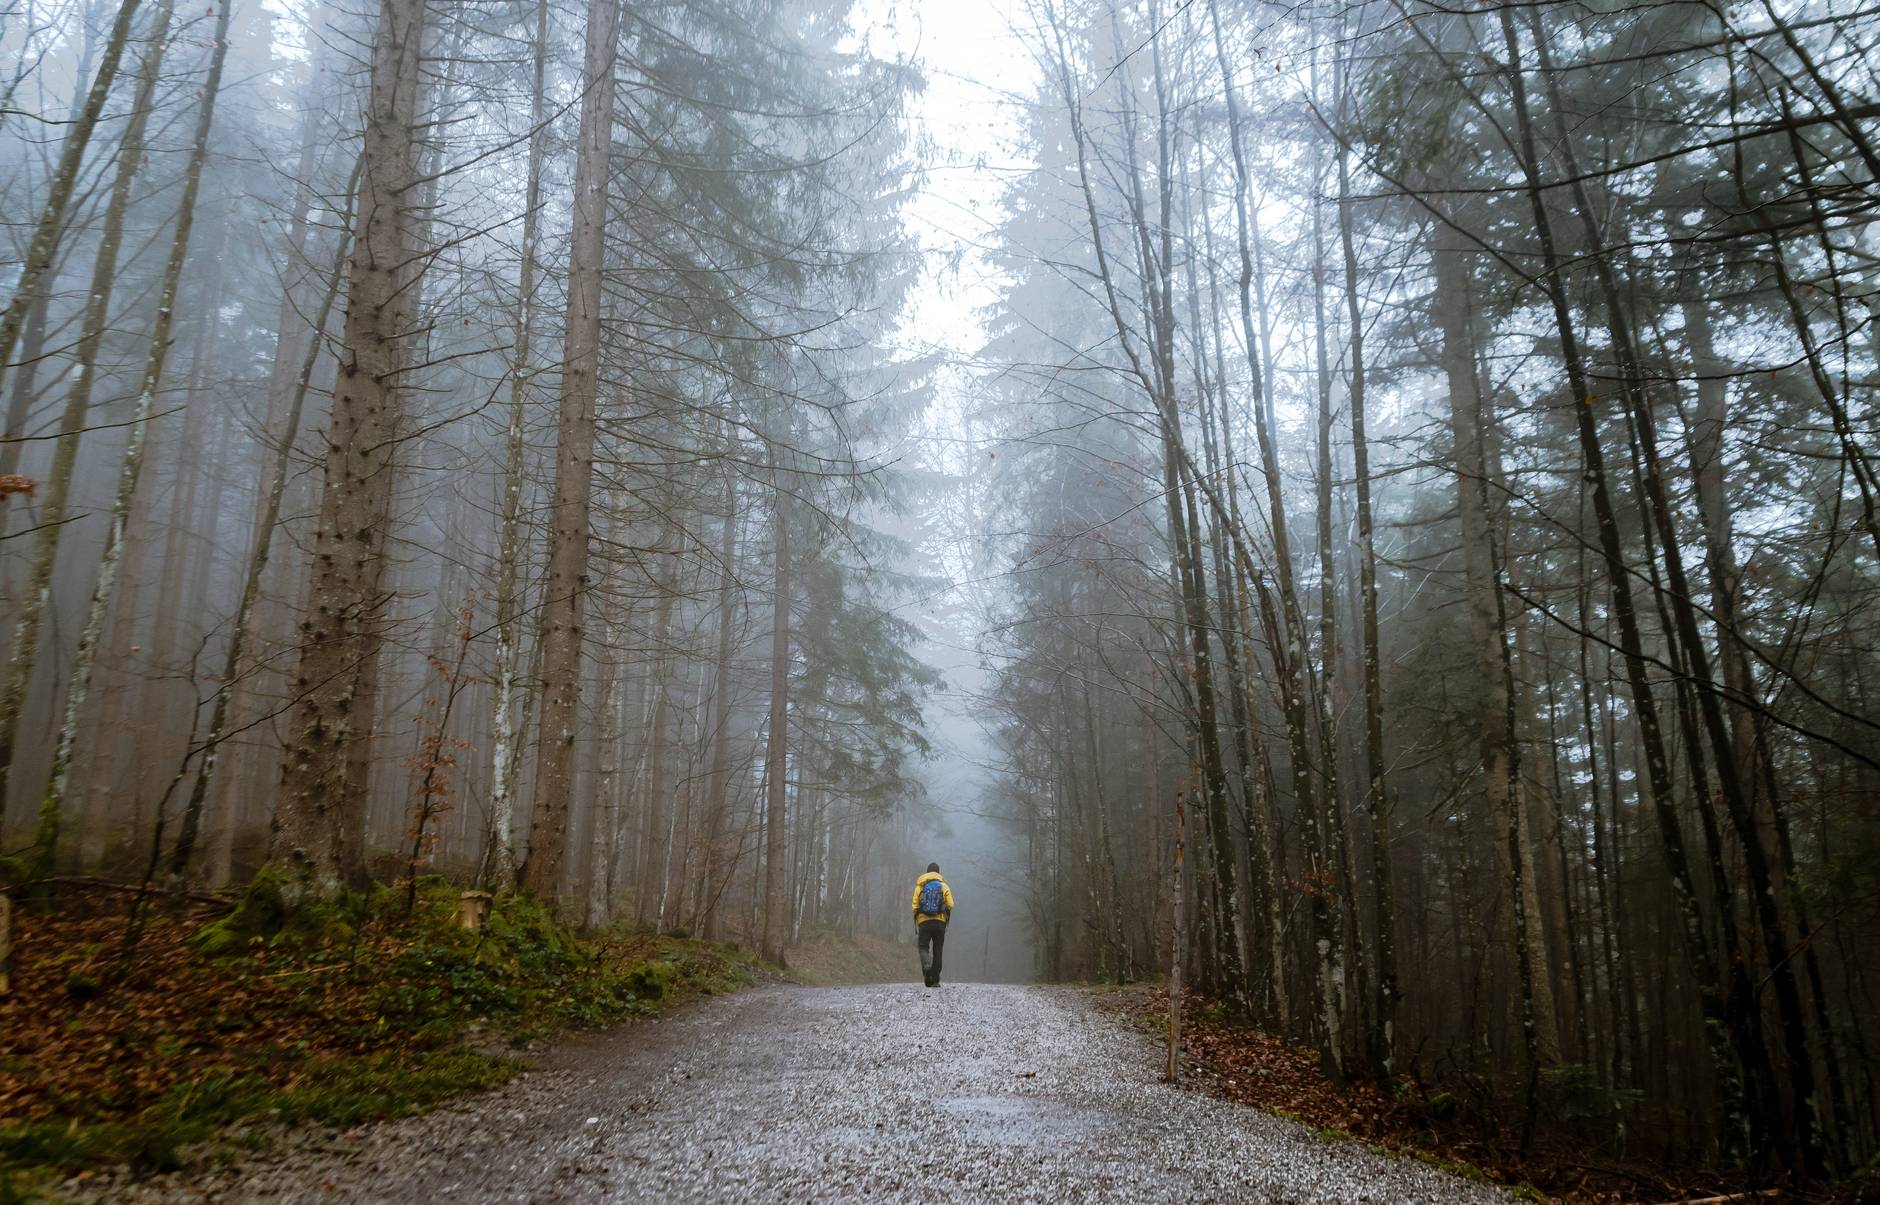 alone autumn mood forest cold countryside designed to walk backpack